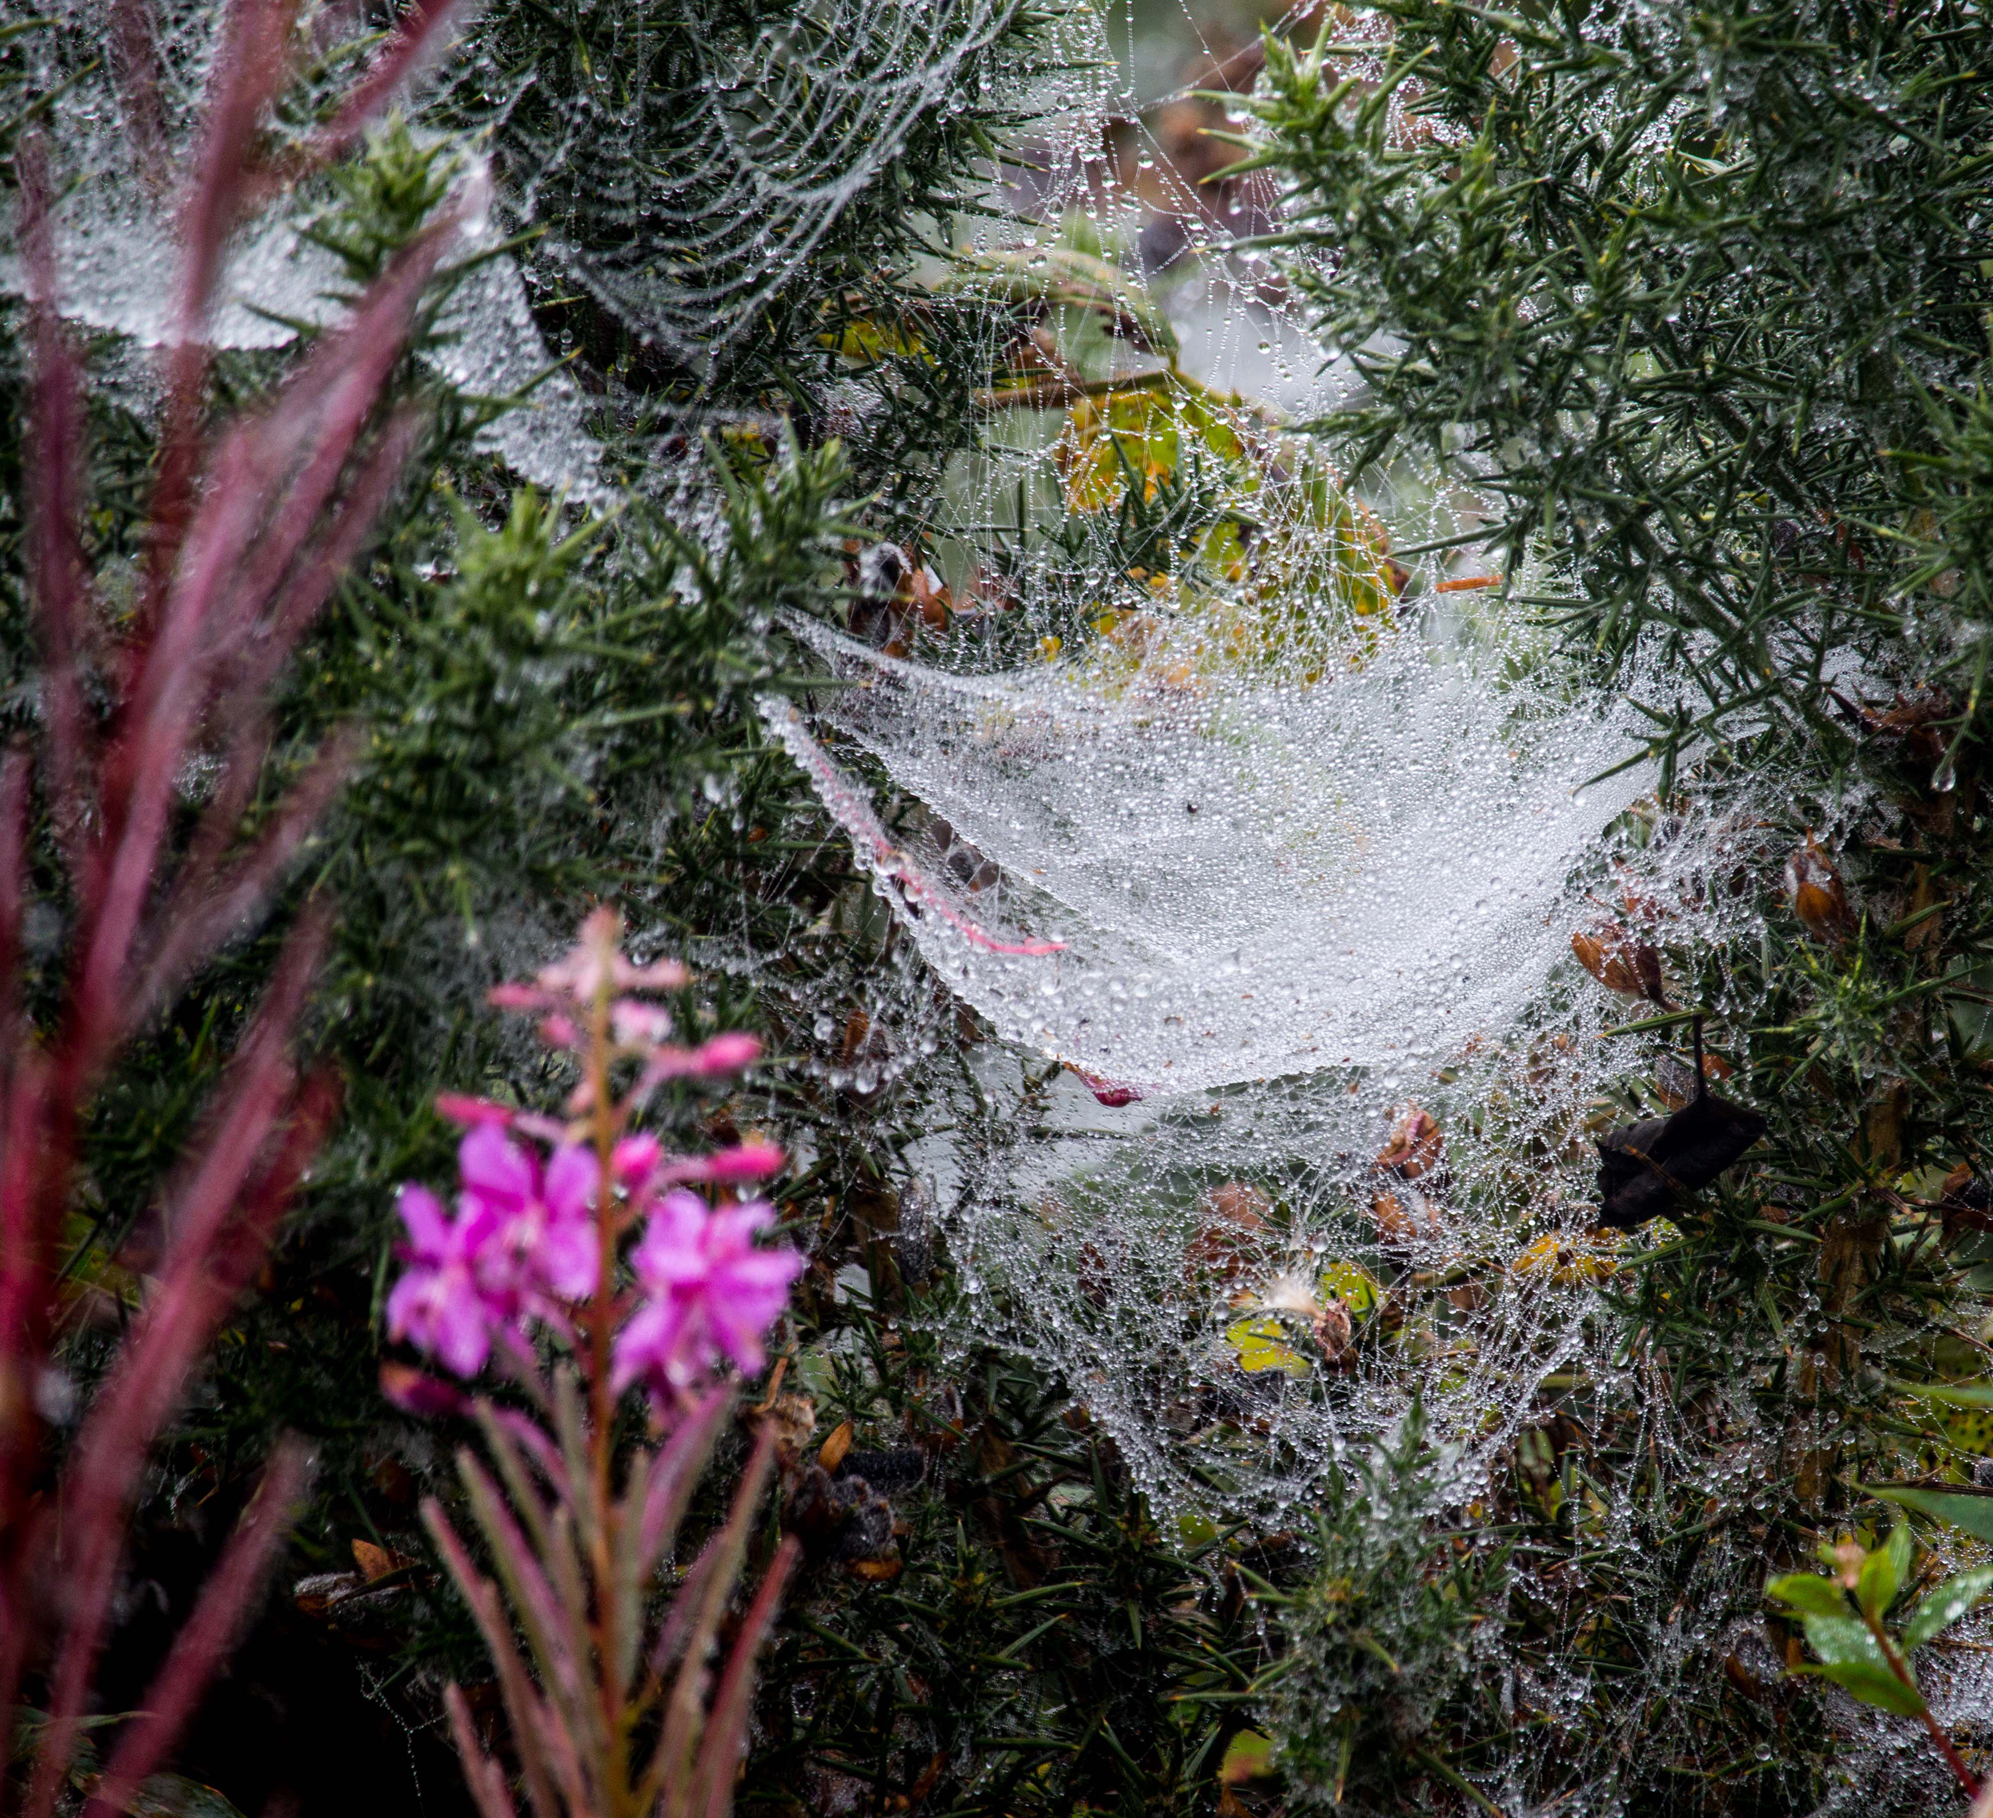 Cobwebs